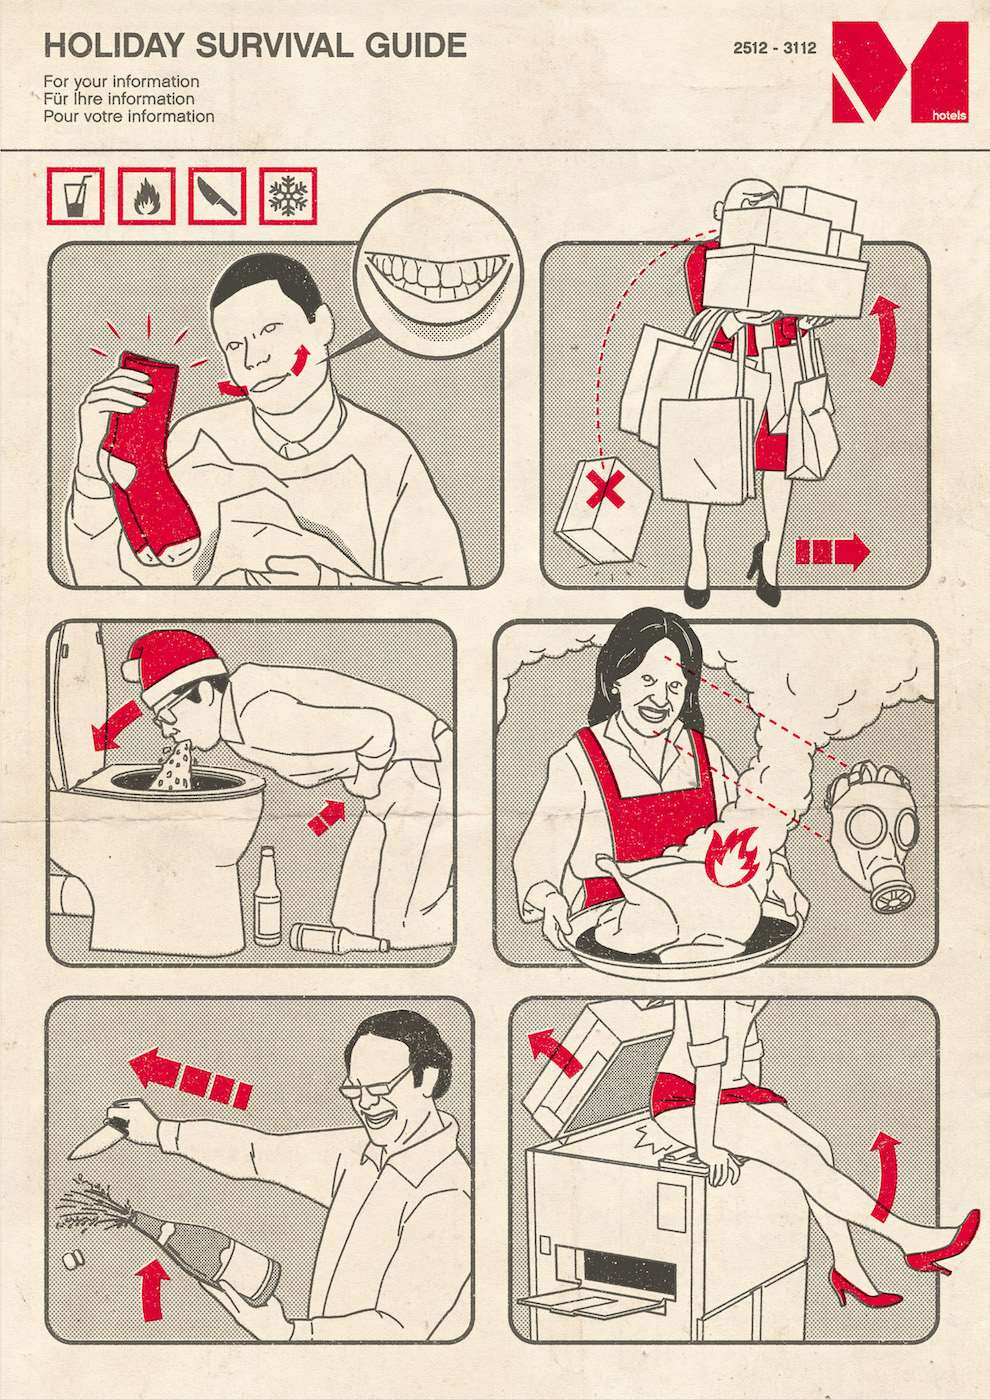 Tobatron, Holiday survival guide witty infographic illustration